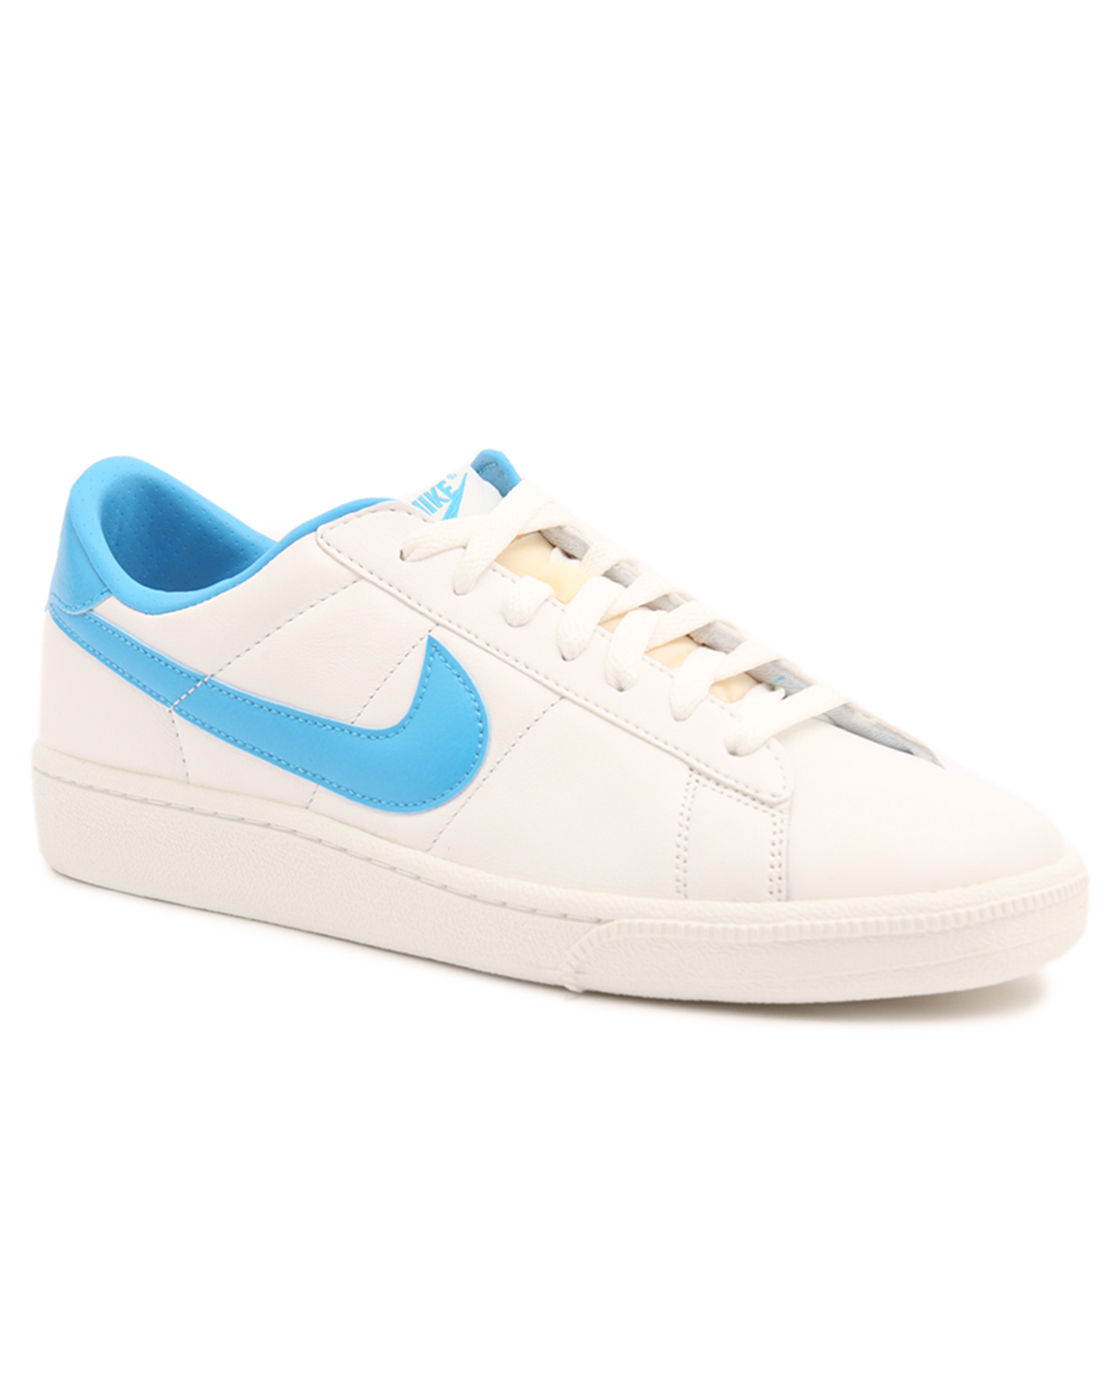 nike tennis classic white leather sneakers in white for men lyst. Black Bedroom Furniture Sets. Home Design Ideas